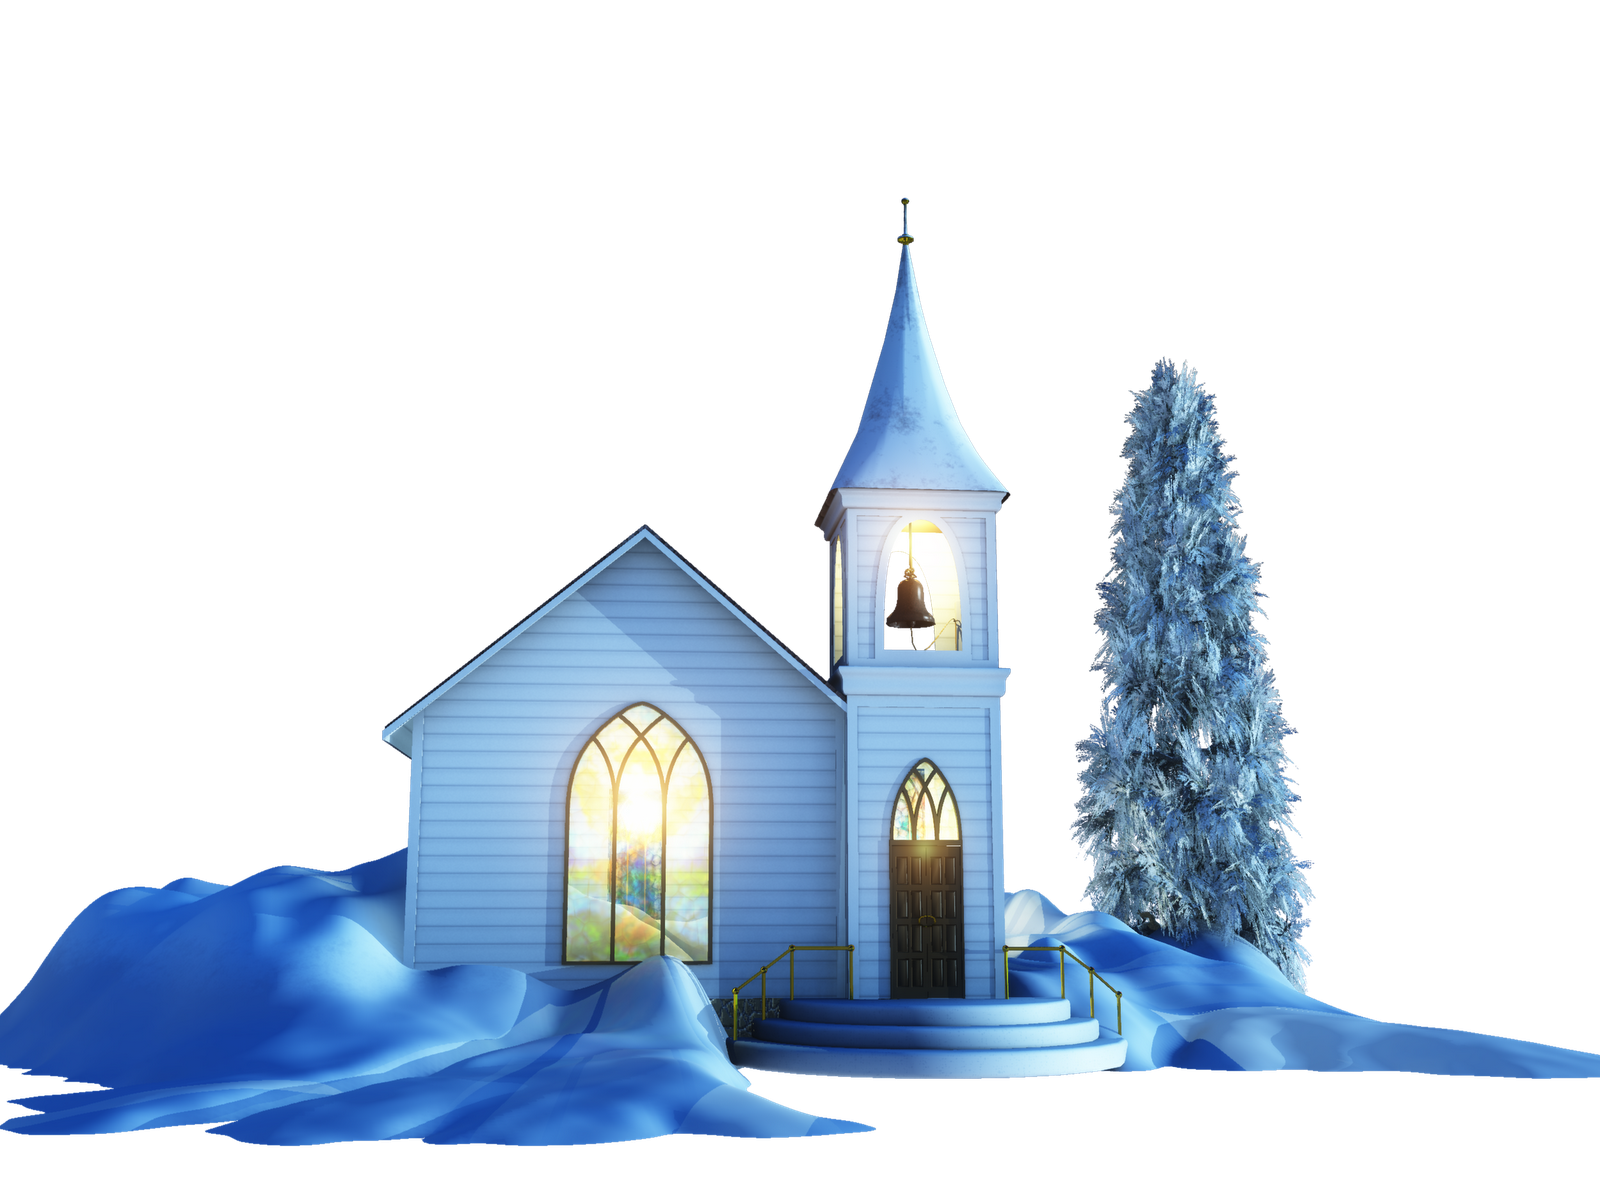 Transparent church building. Png images all file